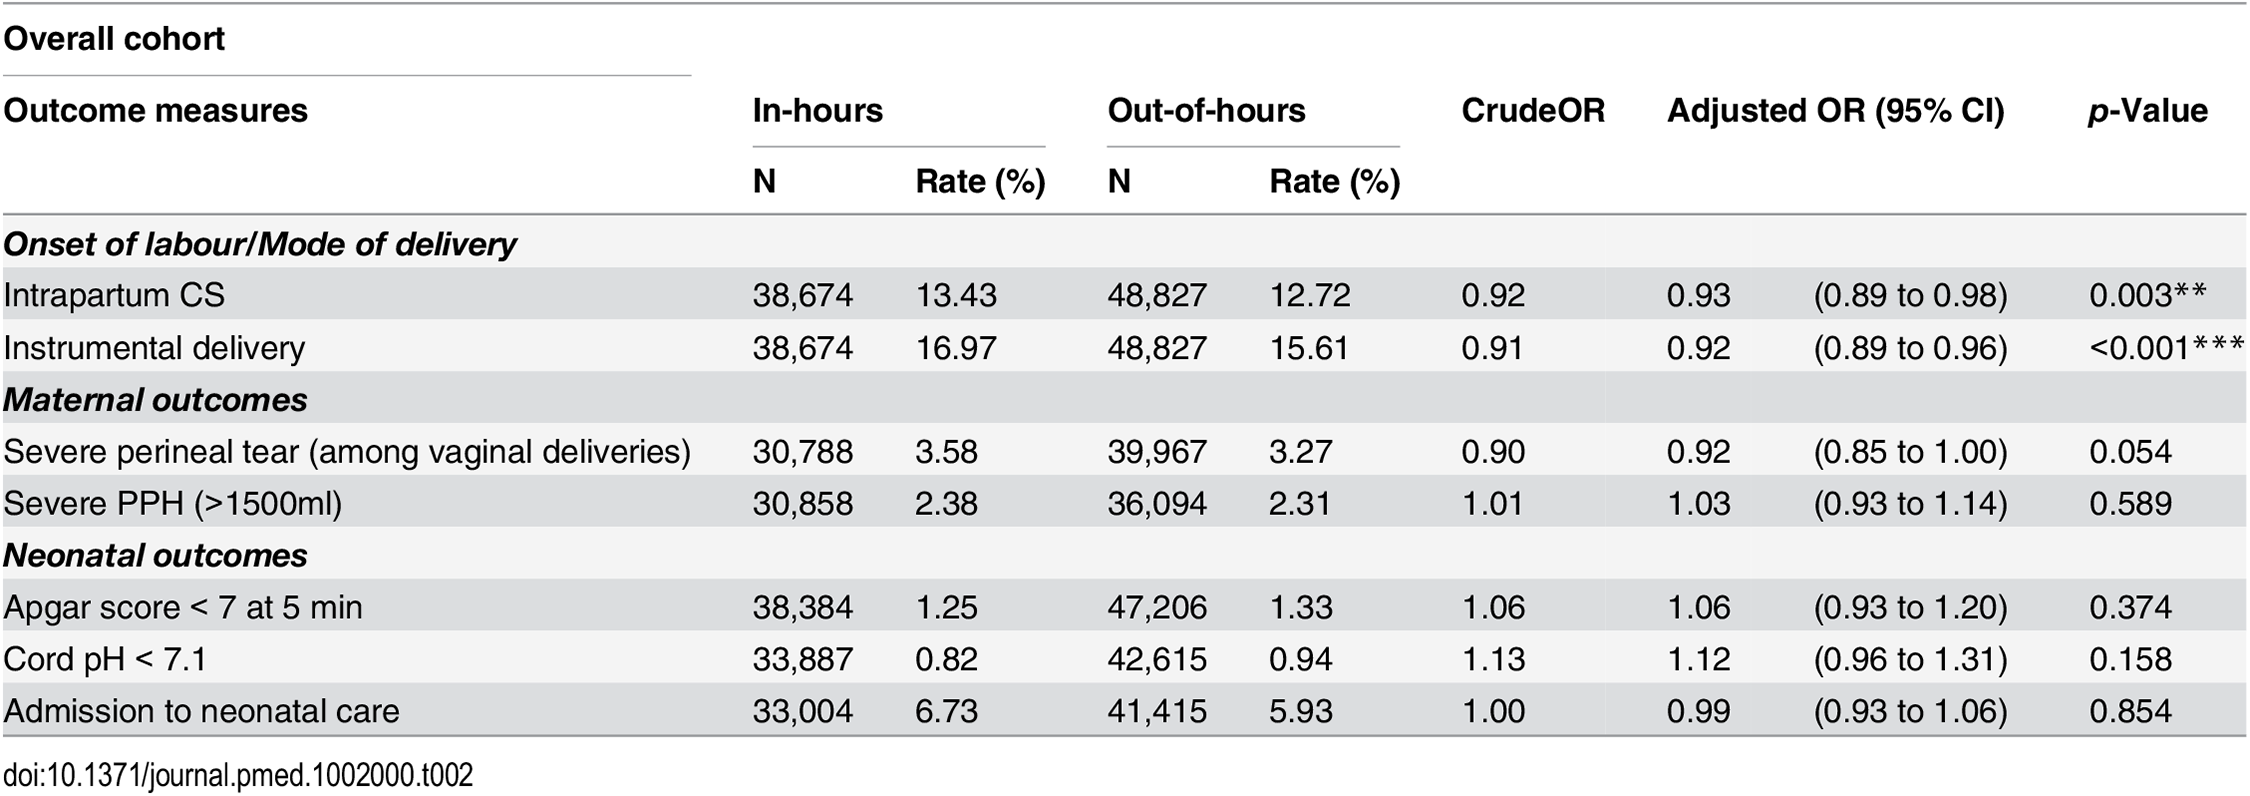 Crude and adjusted odds ratios for adverse perinatal outcomes, comparing in-hours and out-of-hours.